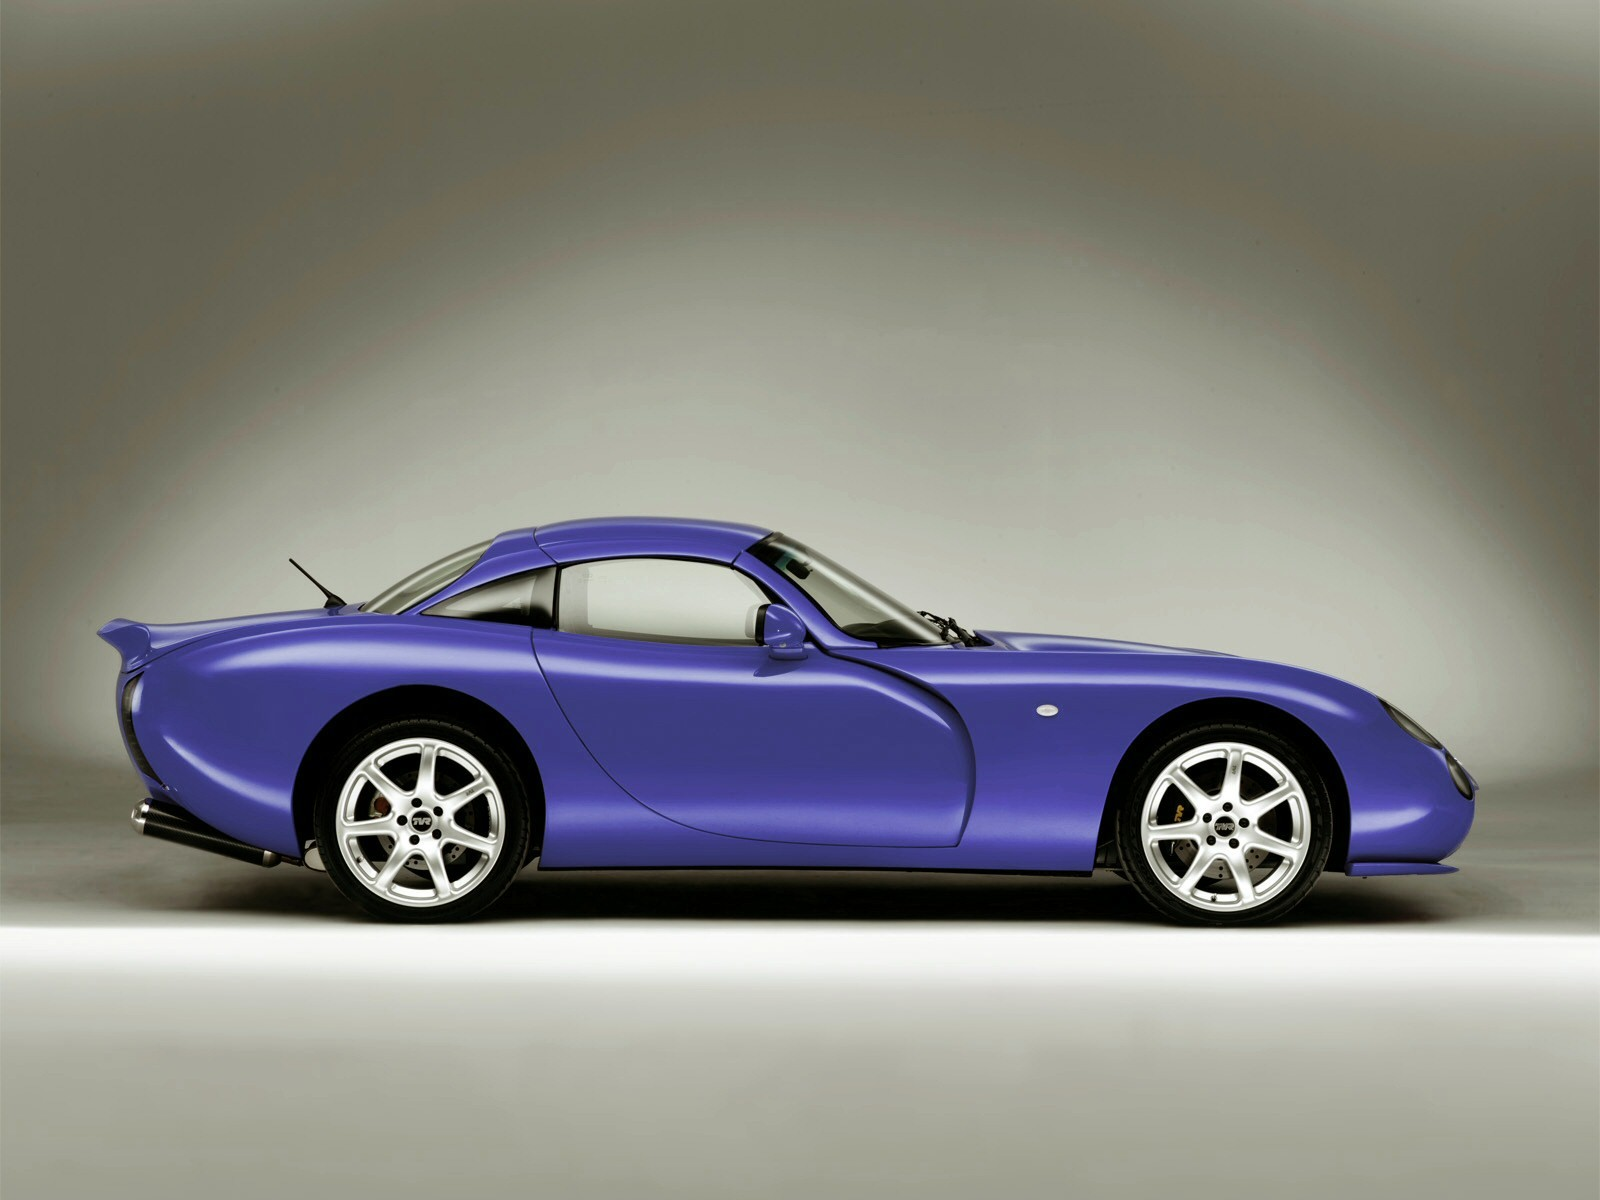 TVR Tuscan S 2006